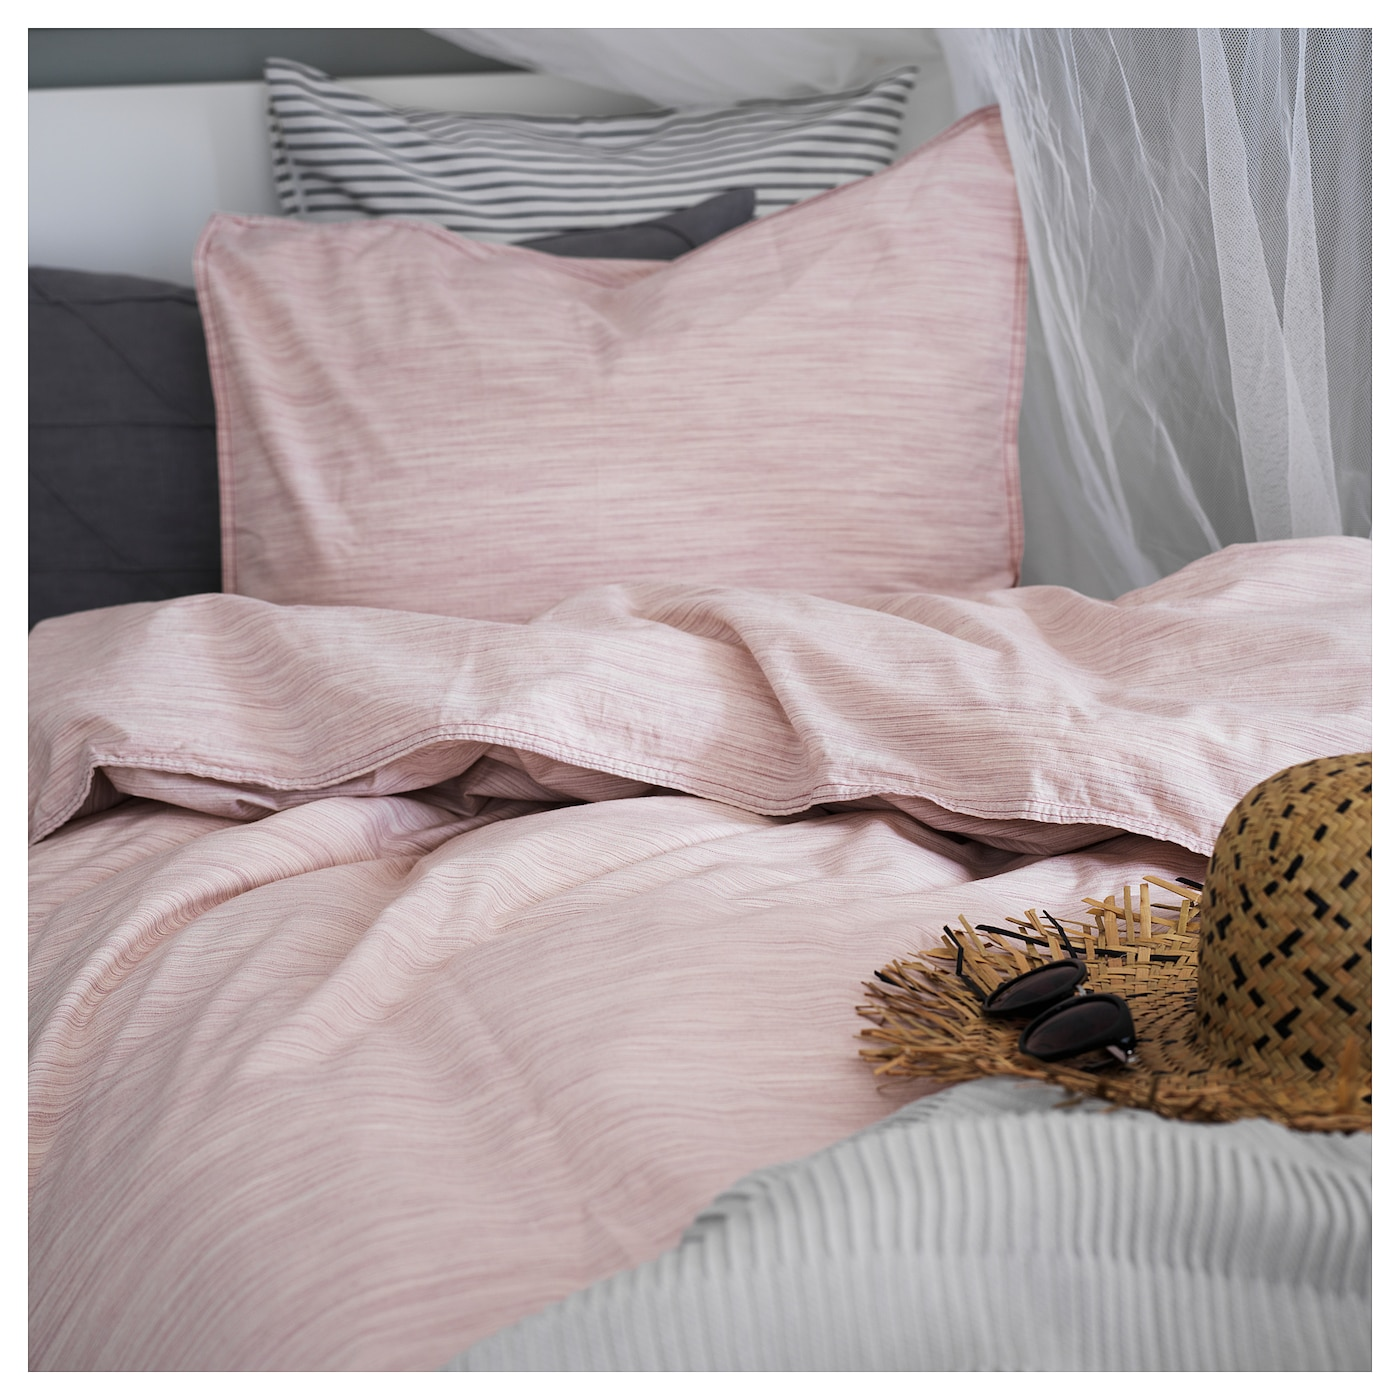 SKOGSALM Quilt cover and 6 pillowcases - pink 640x660/6x6 cm